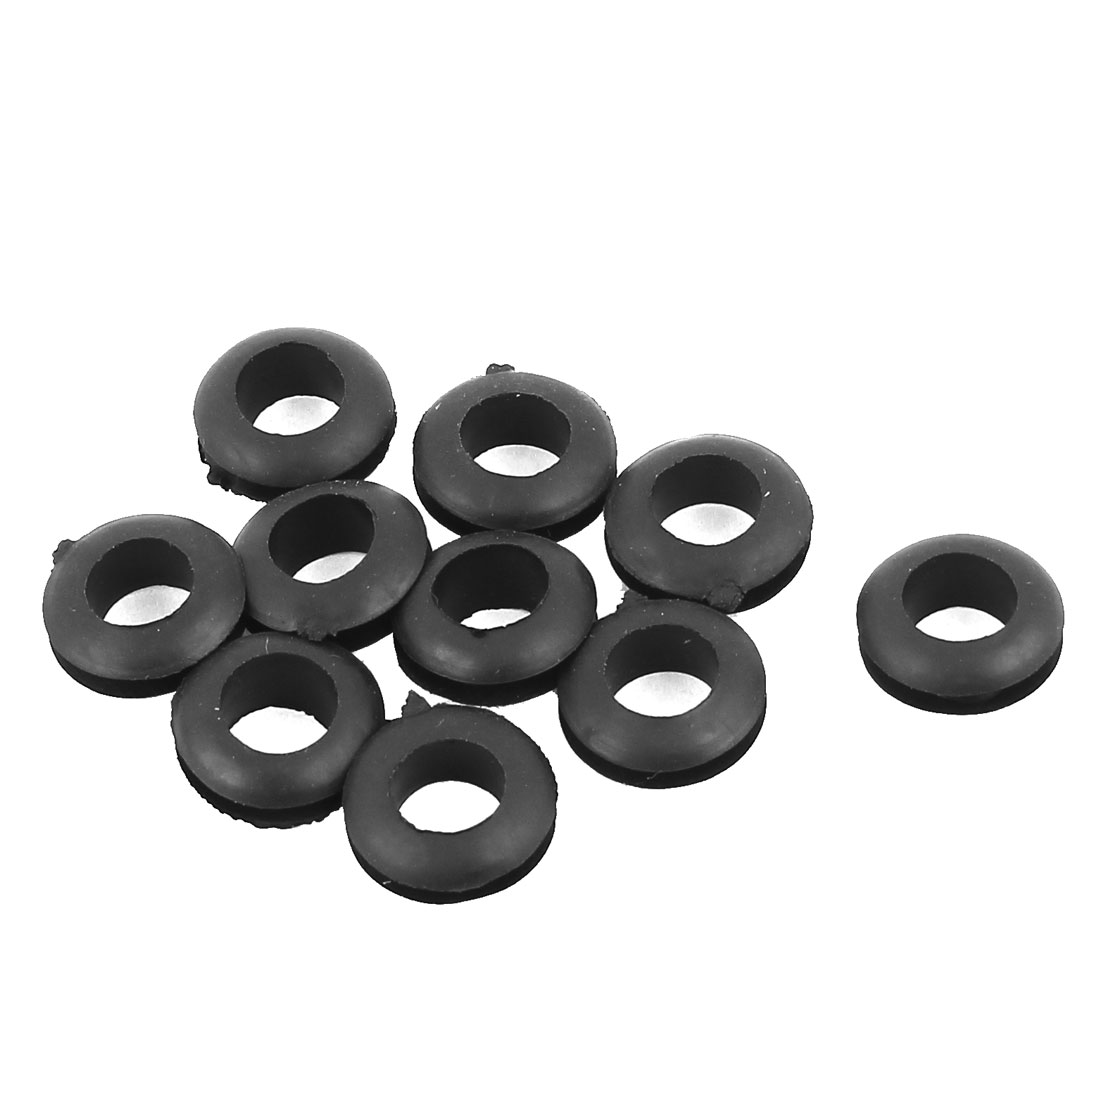 8mm Inner Dia Double Sides Rubber Cable Wiring Grommets Gasket Ring 10Pcs